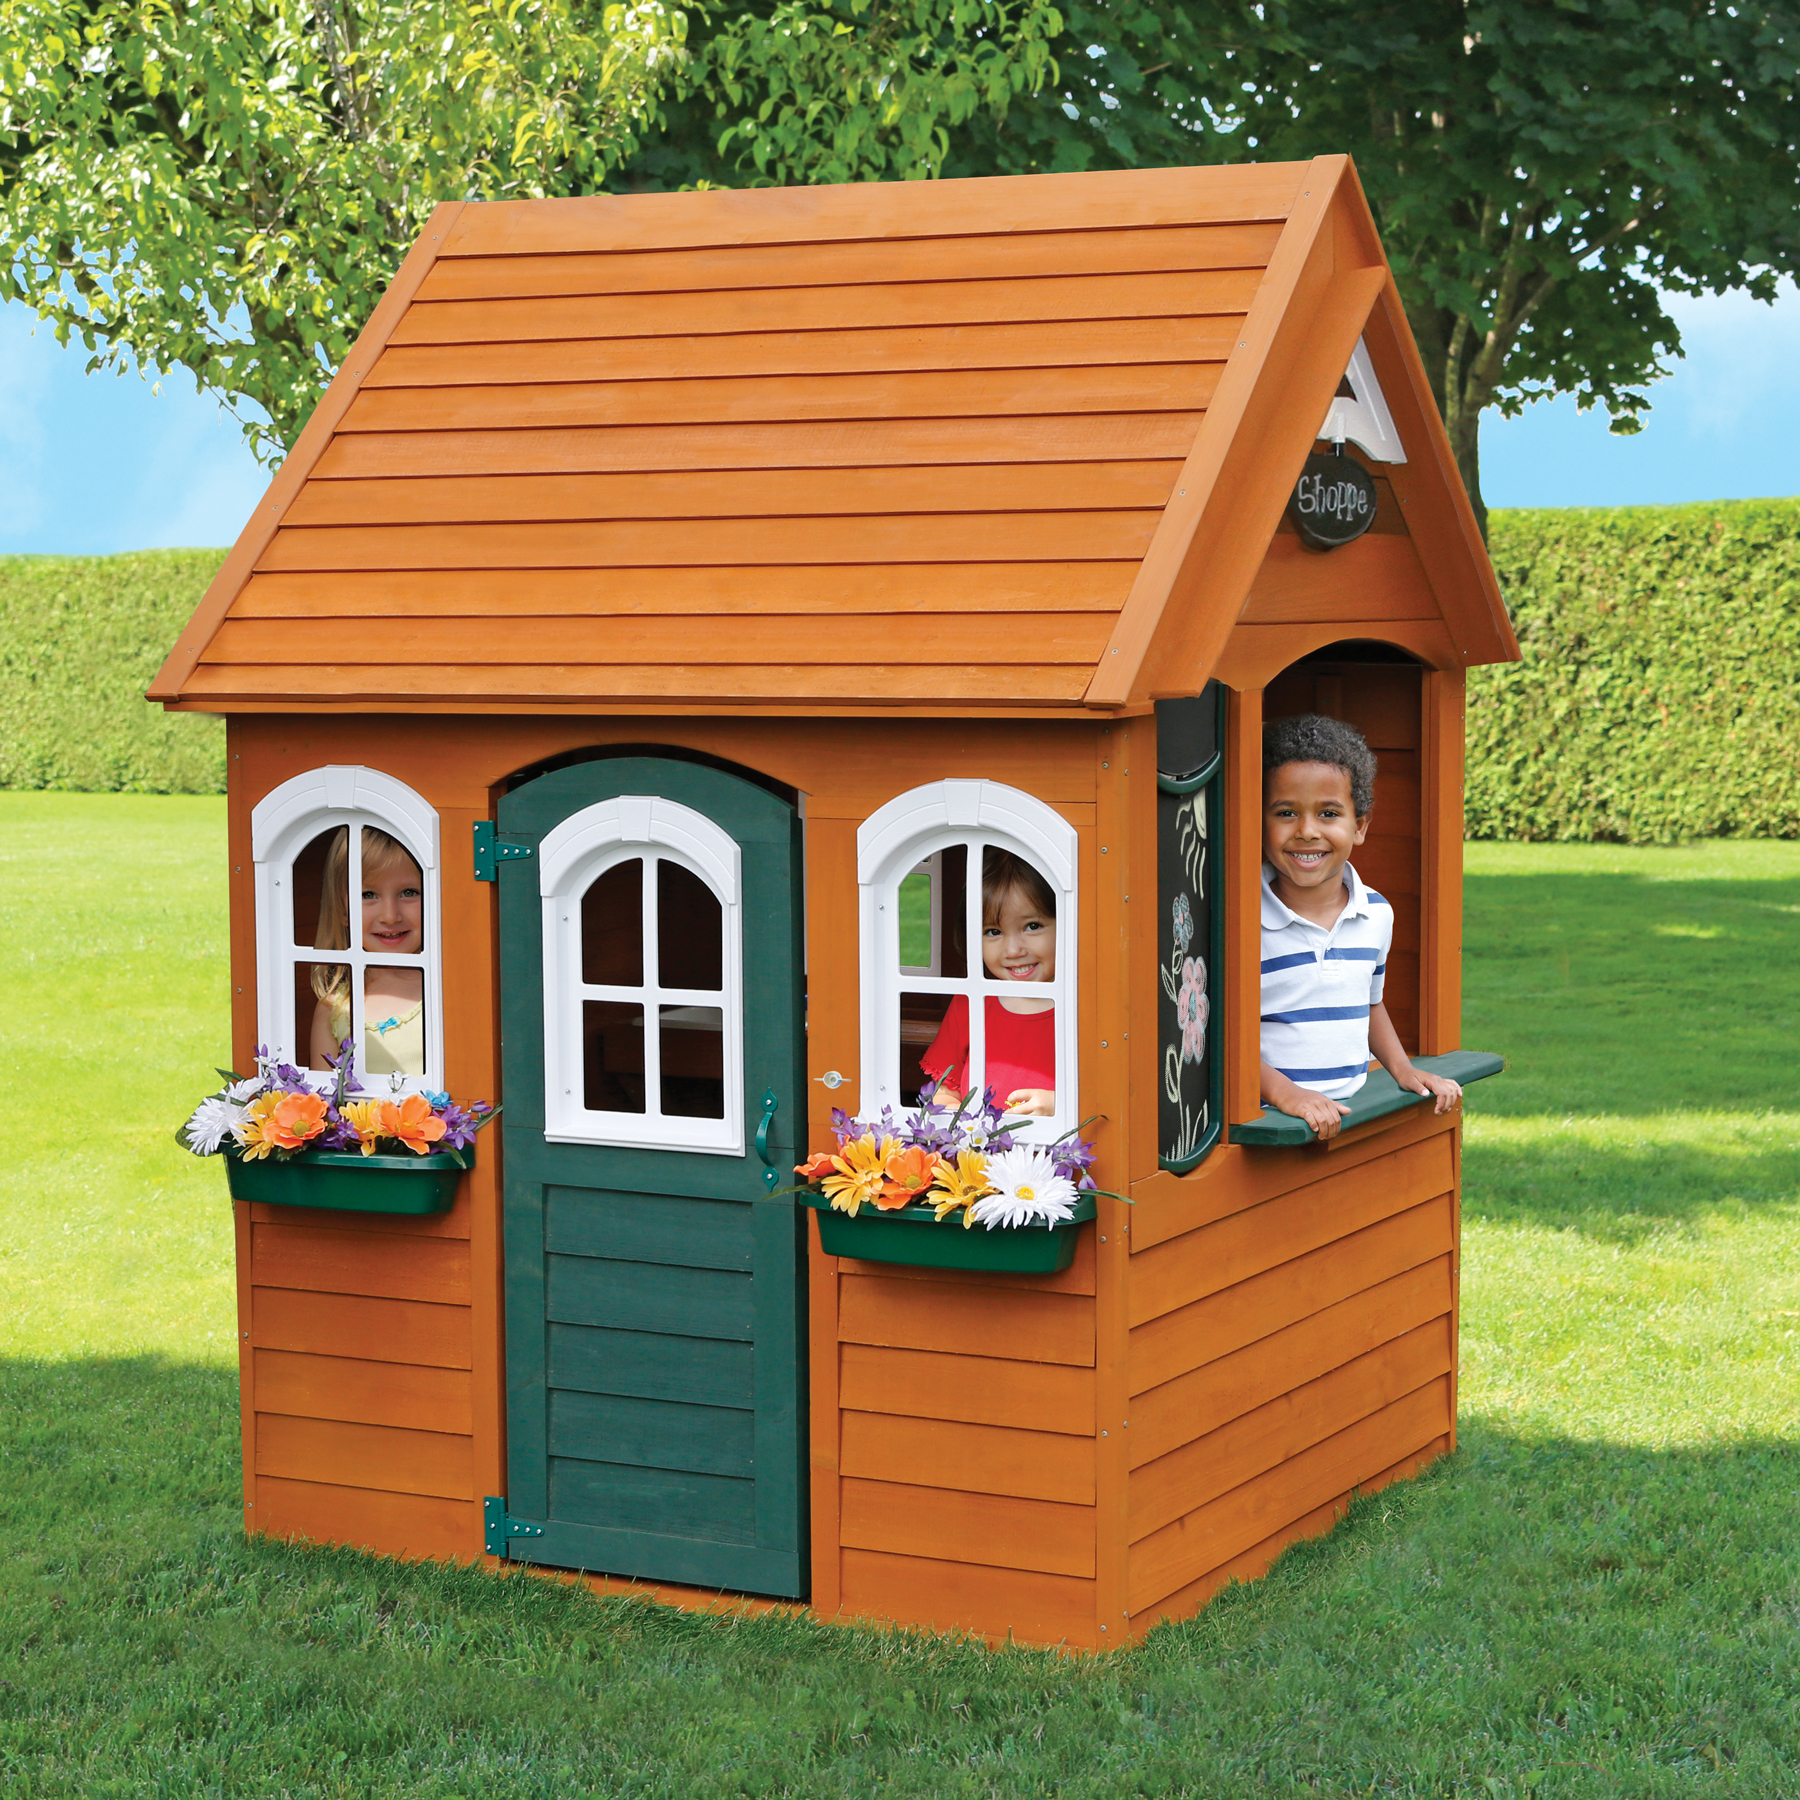 KidKraft Bancroft Wooden Playhouse